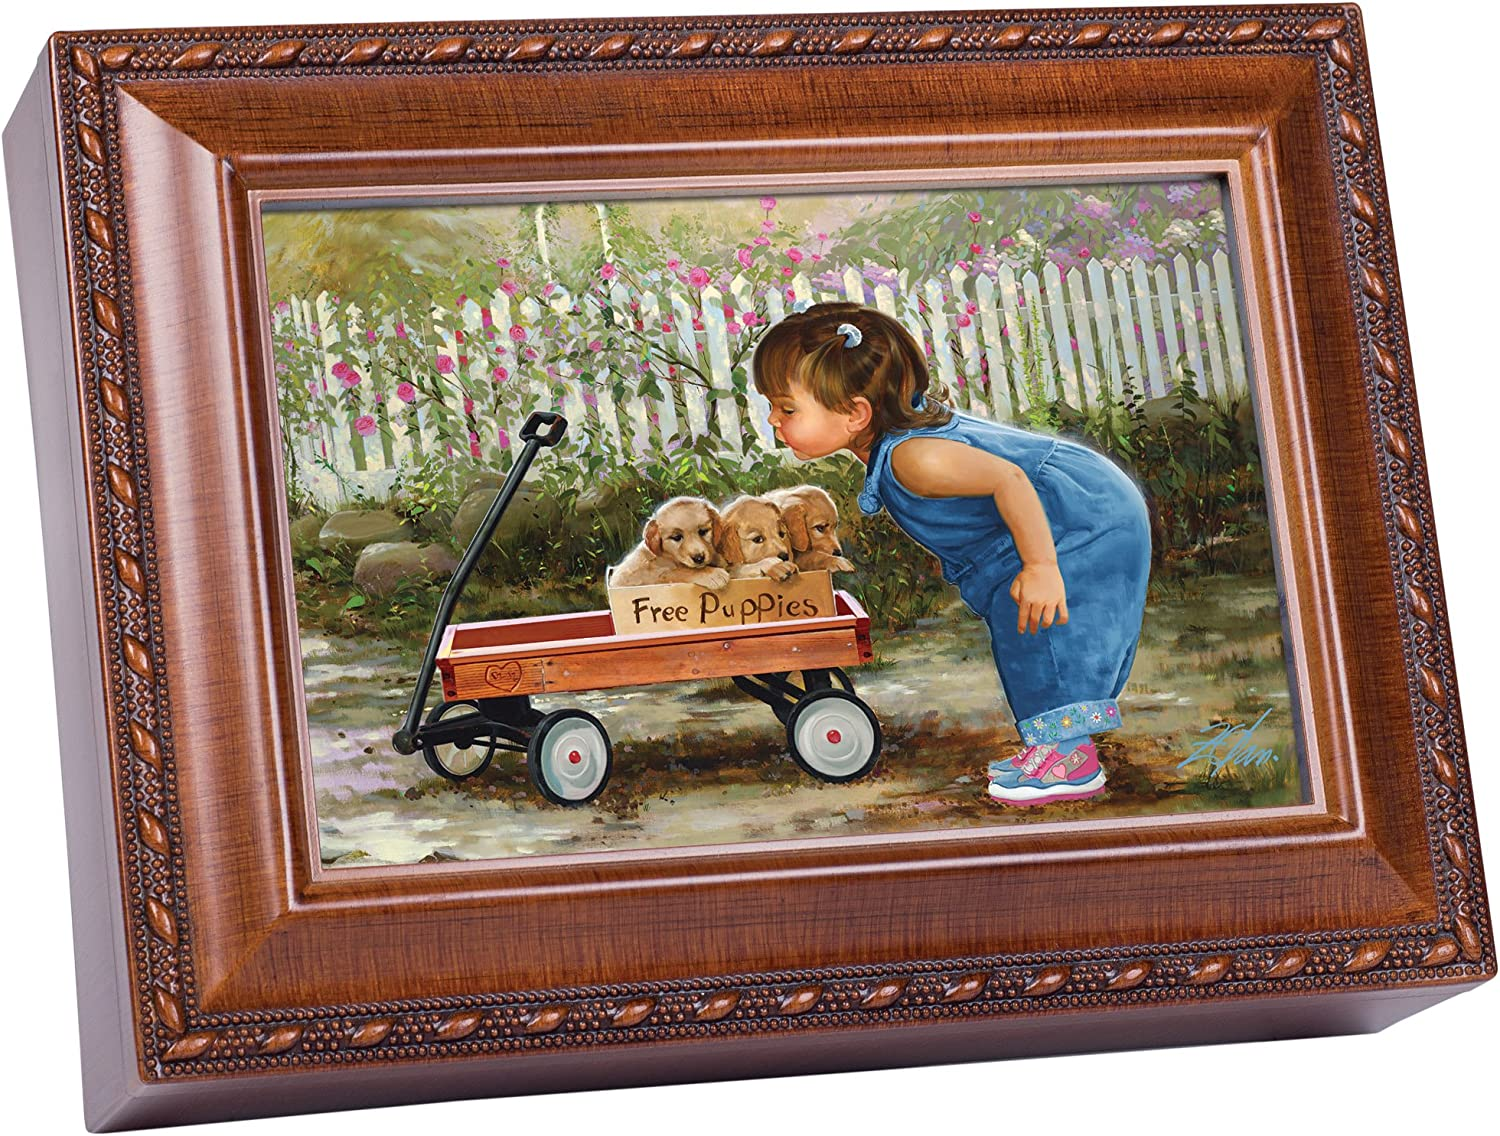 Cottage Garden Free Puppies Girl with Wood Wagon Woodgrain Rope Trim Jewelry Music Box Plays You are My Sunshine